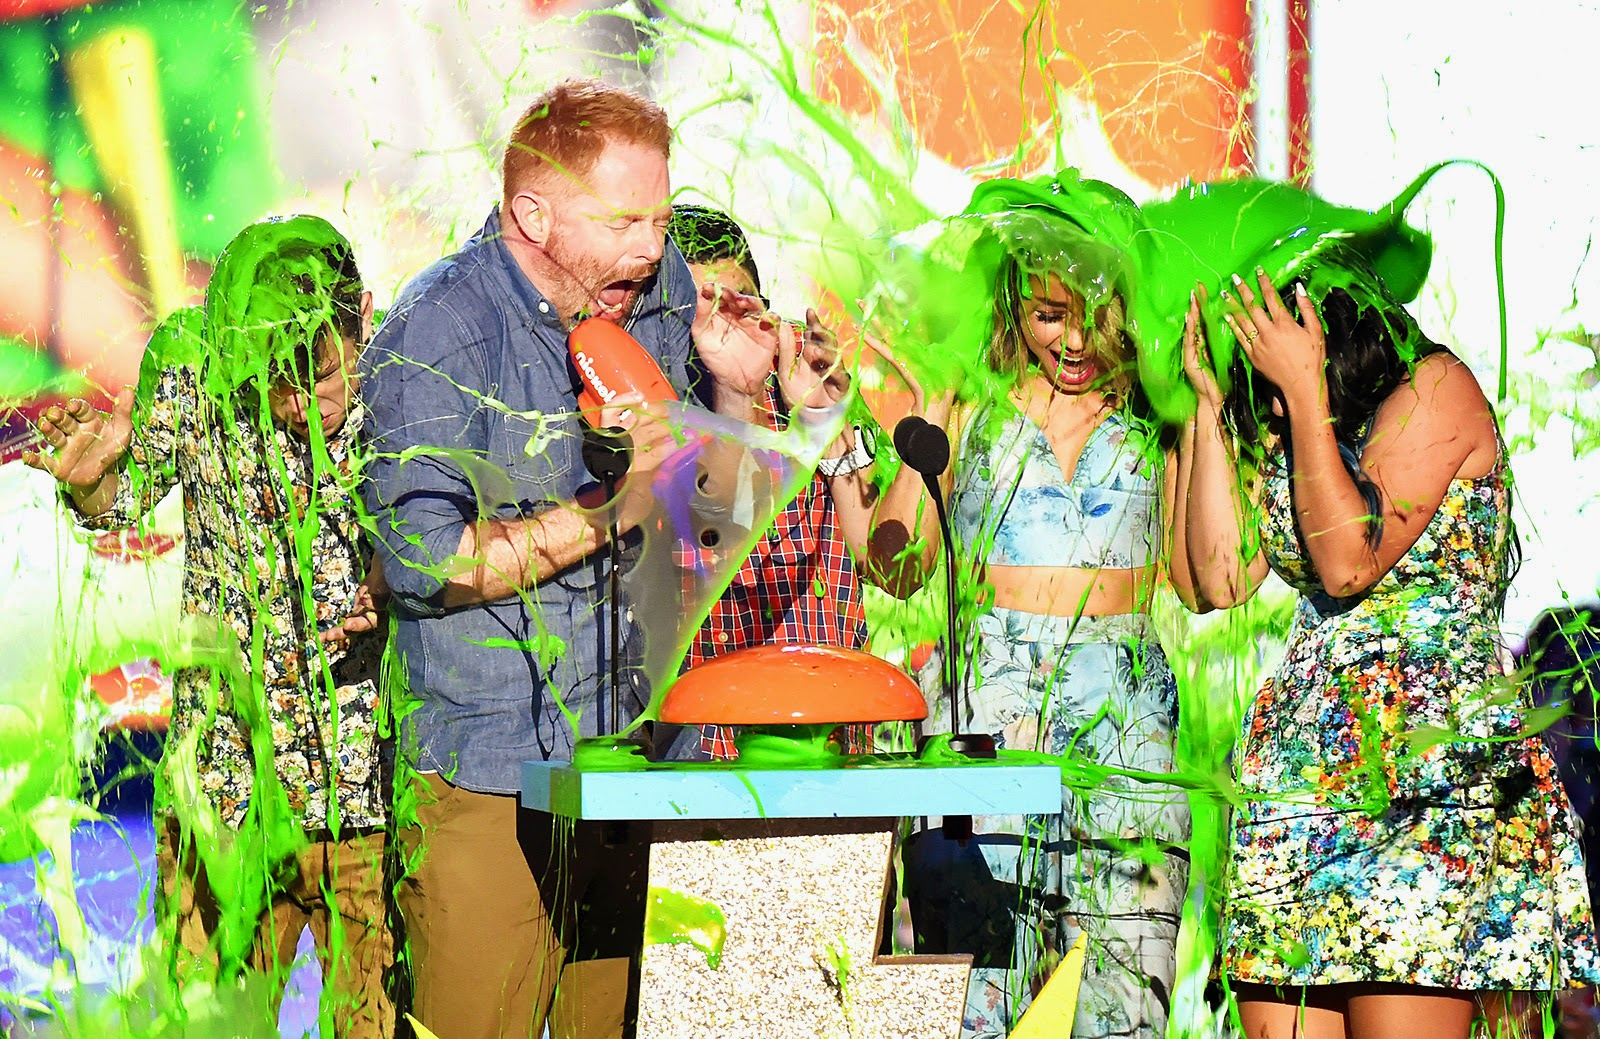 Sarah Hyland gets slimed at the 2015 Nickeldeon Kids' Choice Awards